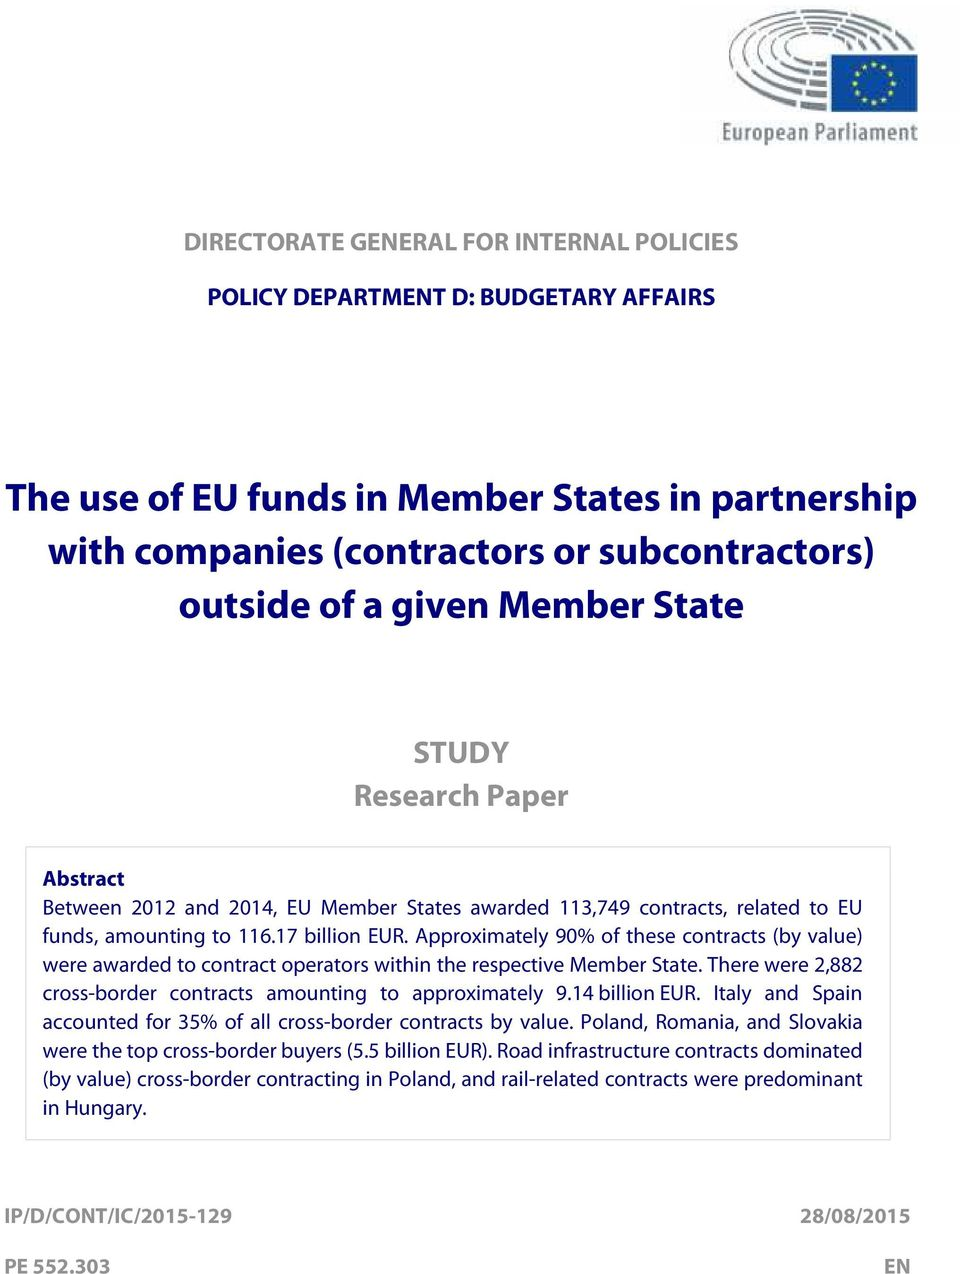 Approximately 90% of these (by value) were awarded to contract operators within the respective Member State. There were 2,882 cross-border amounting to approximately 9.14 billion EUR.